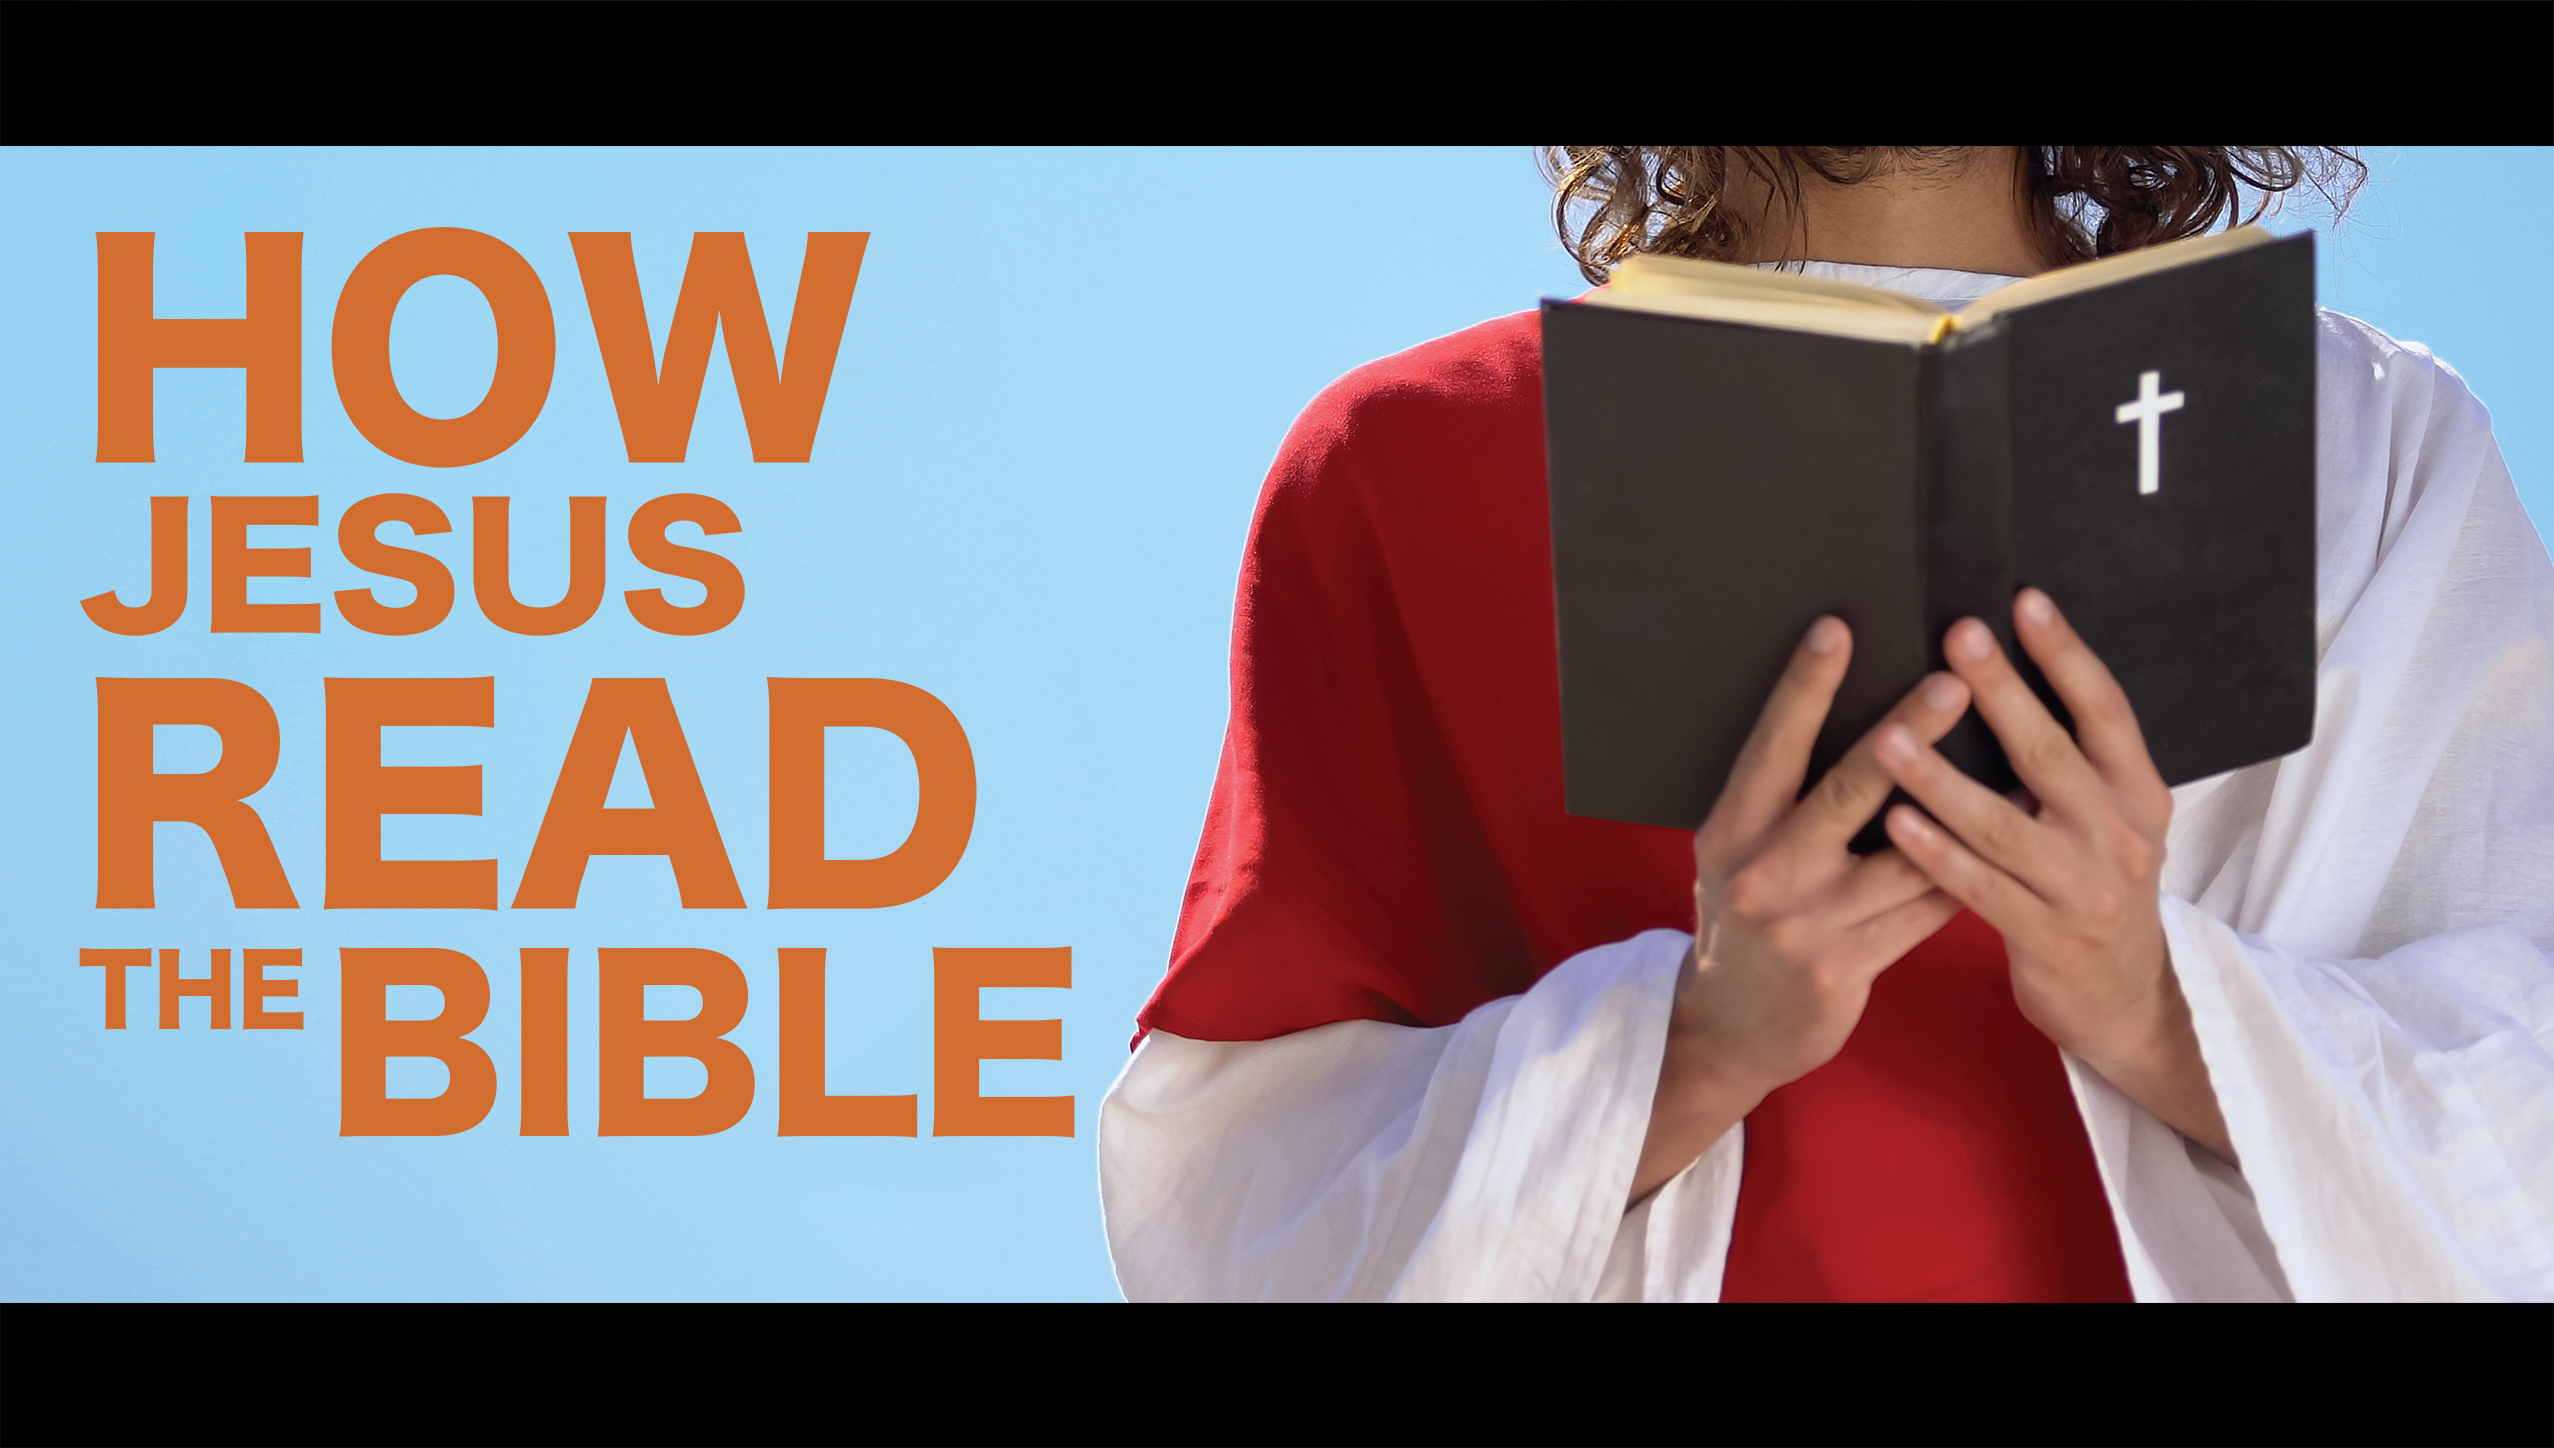 How Did Jesus Read The bible?